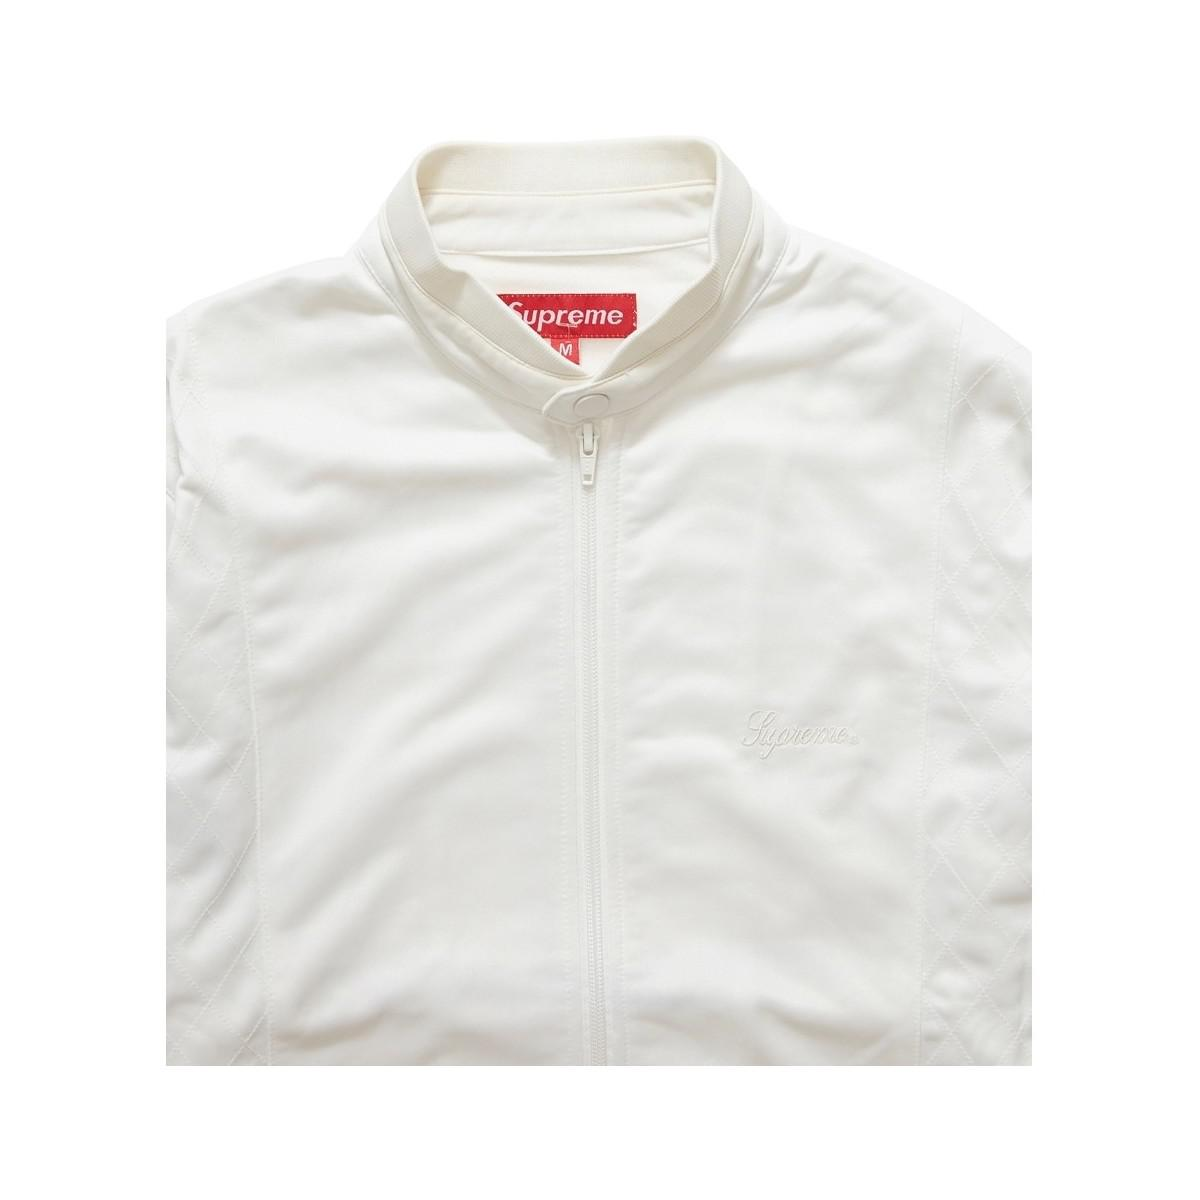 Supreme 2006 Quilted Track Jacket White (nike Sb Blazer) Men's Jacket In White for Men